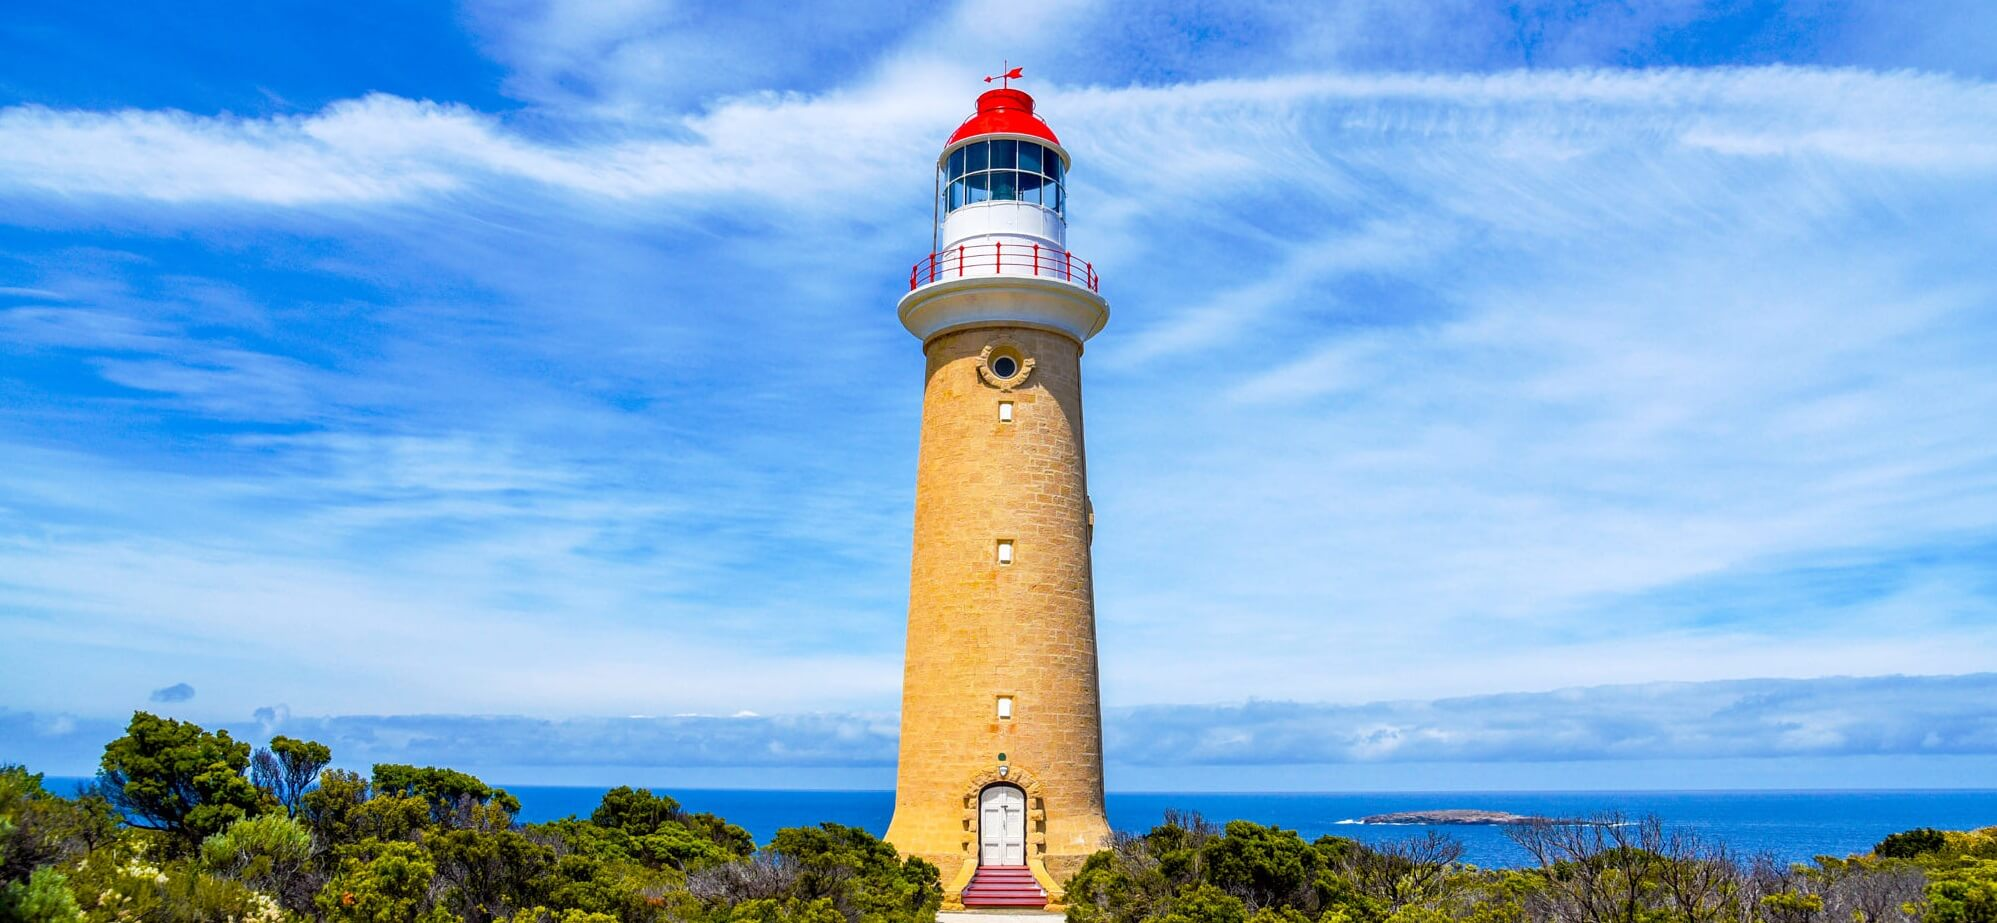 The History of the Cape Du Couedic Lighthouse